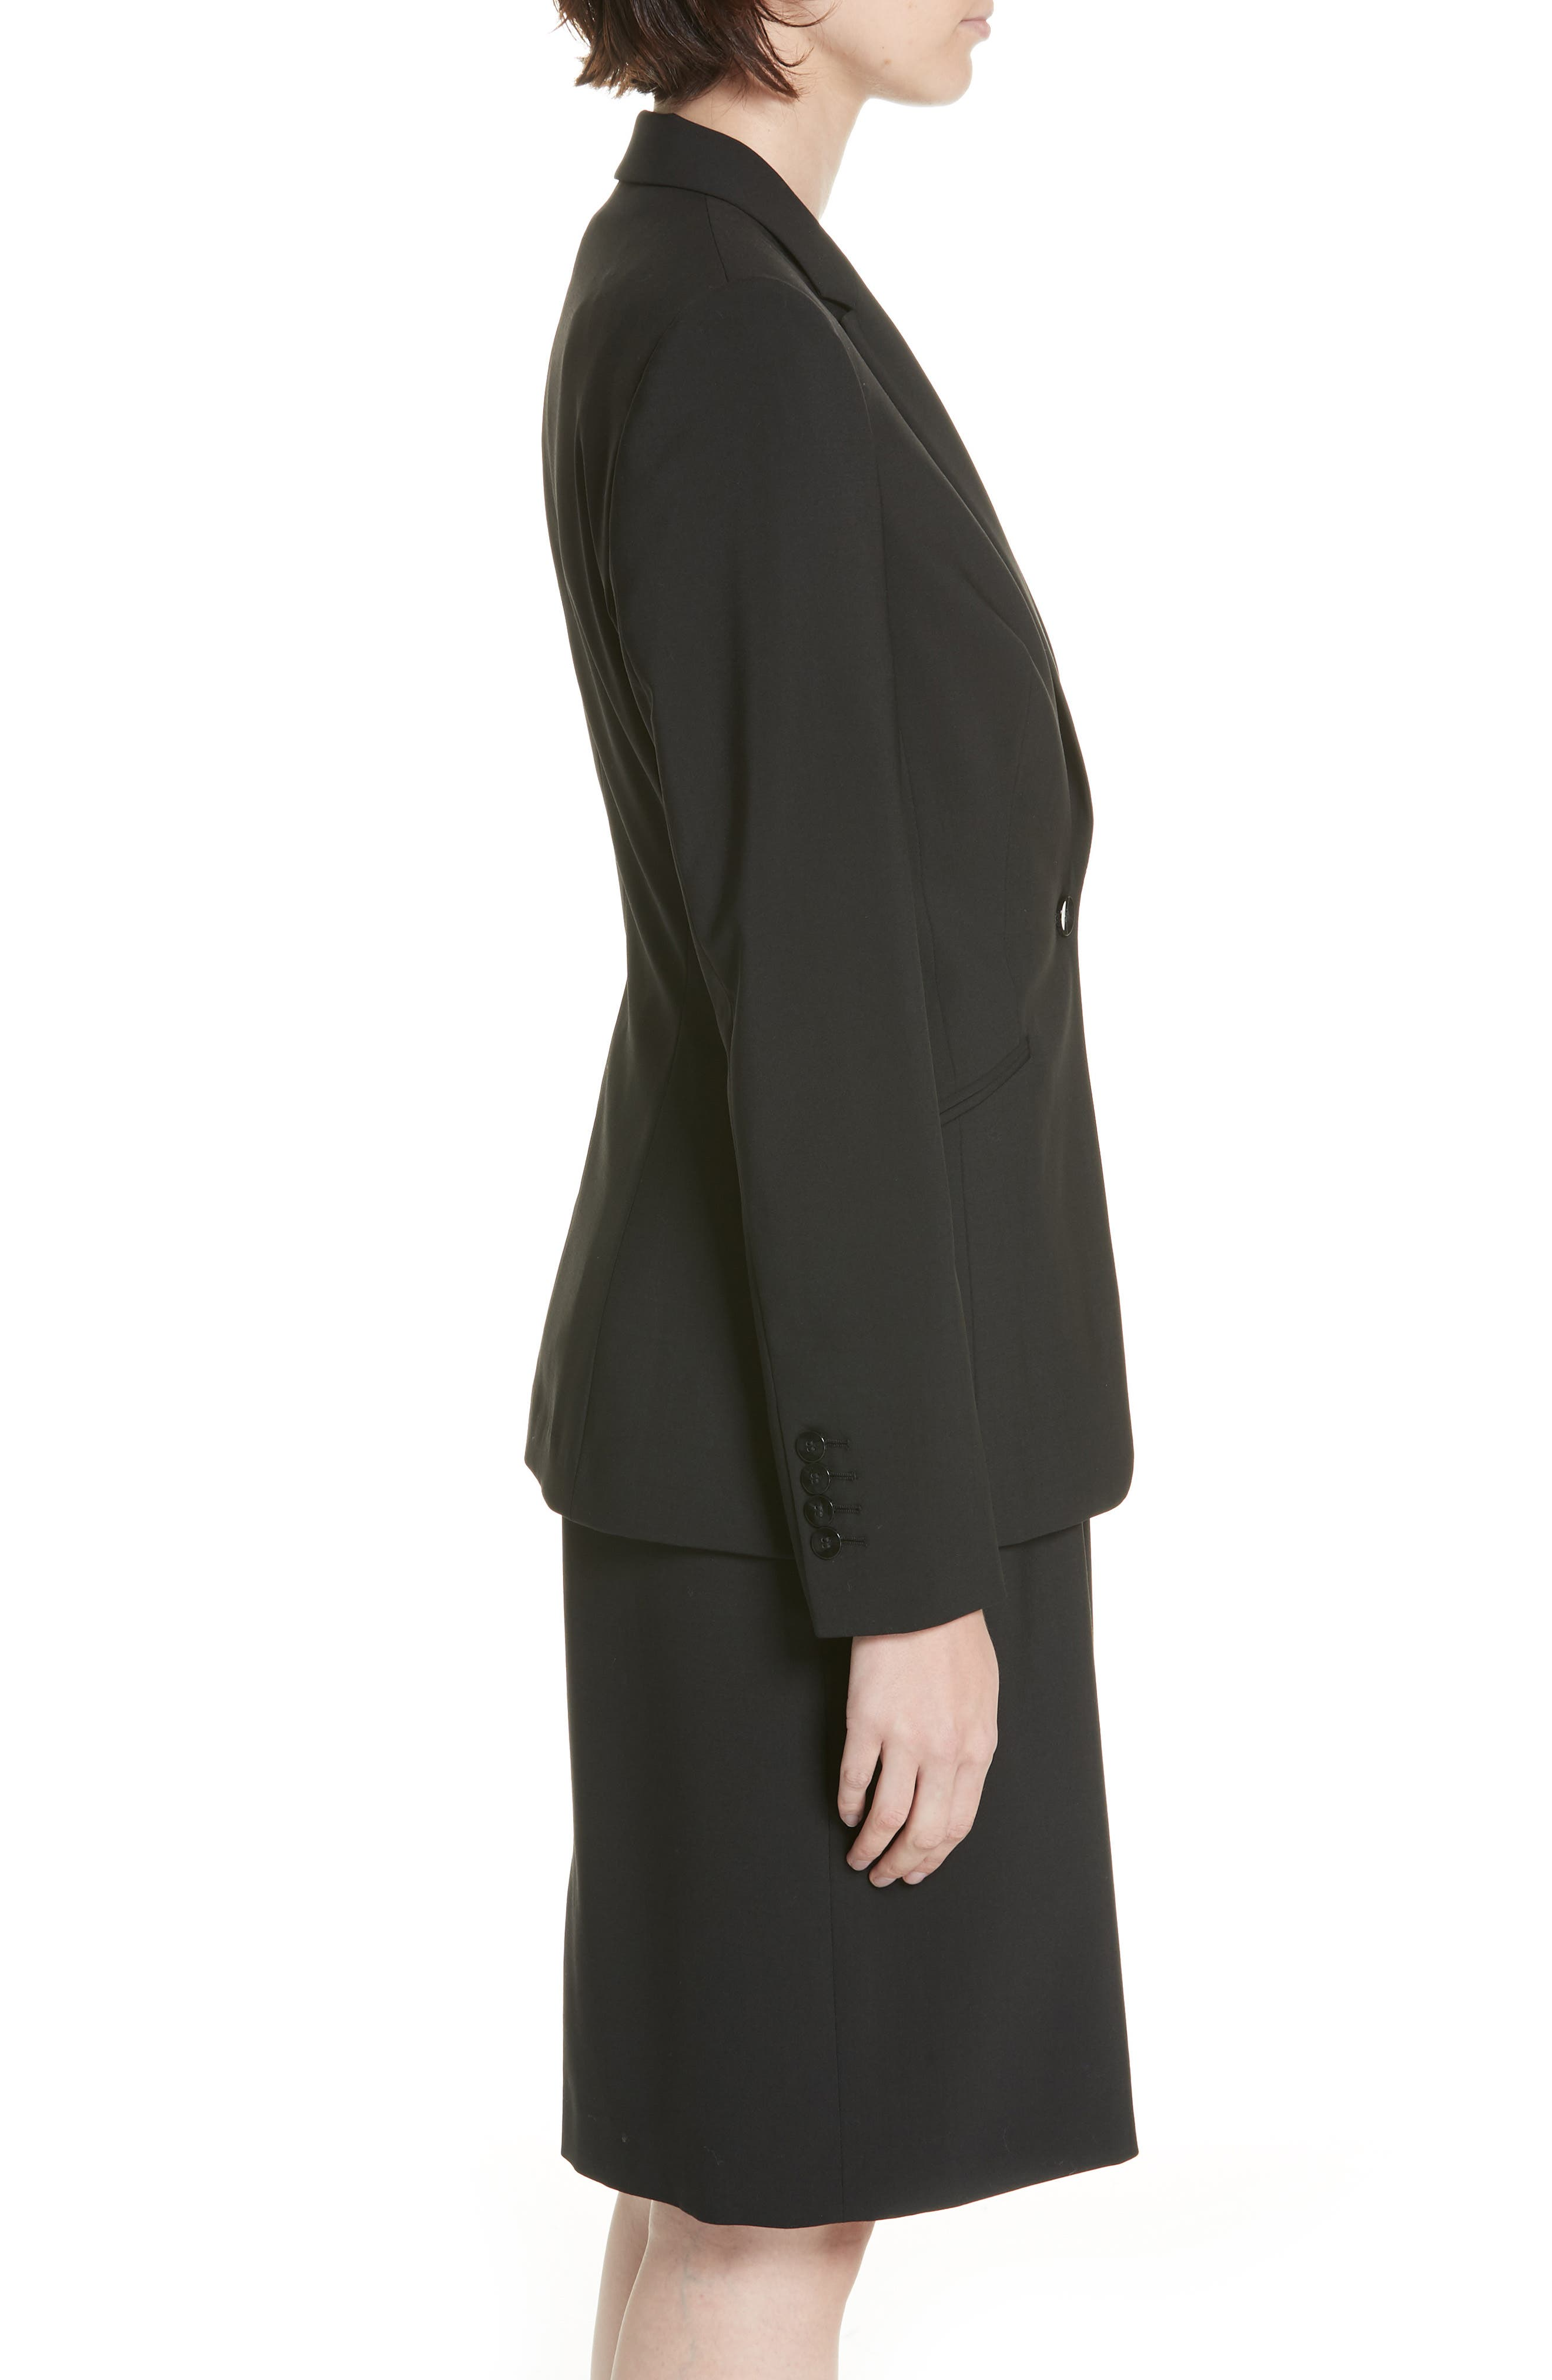 BOSS, Jabina Tropical Stretch Wool Jacket, Alternate thumbnail 4, color, BLACK